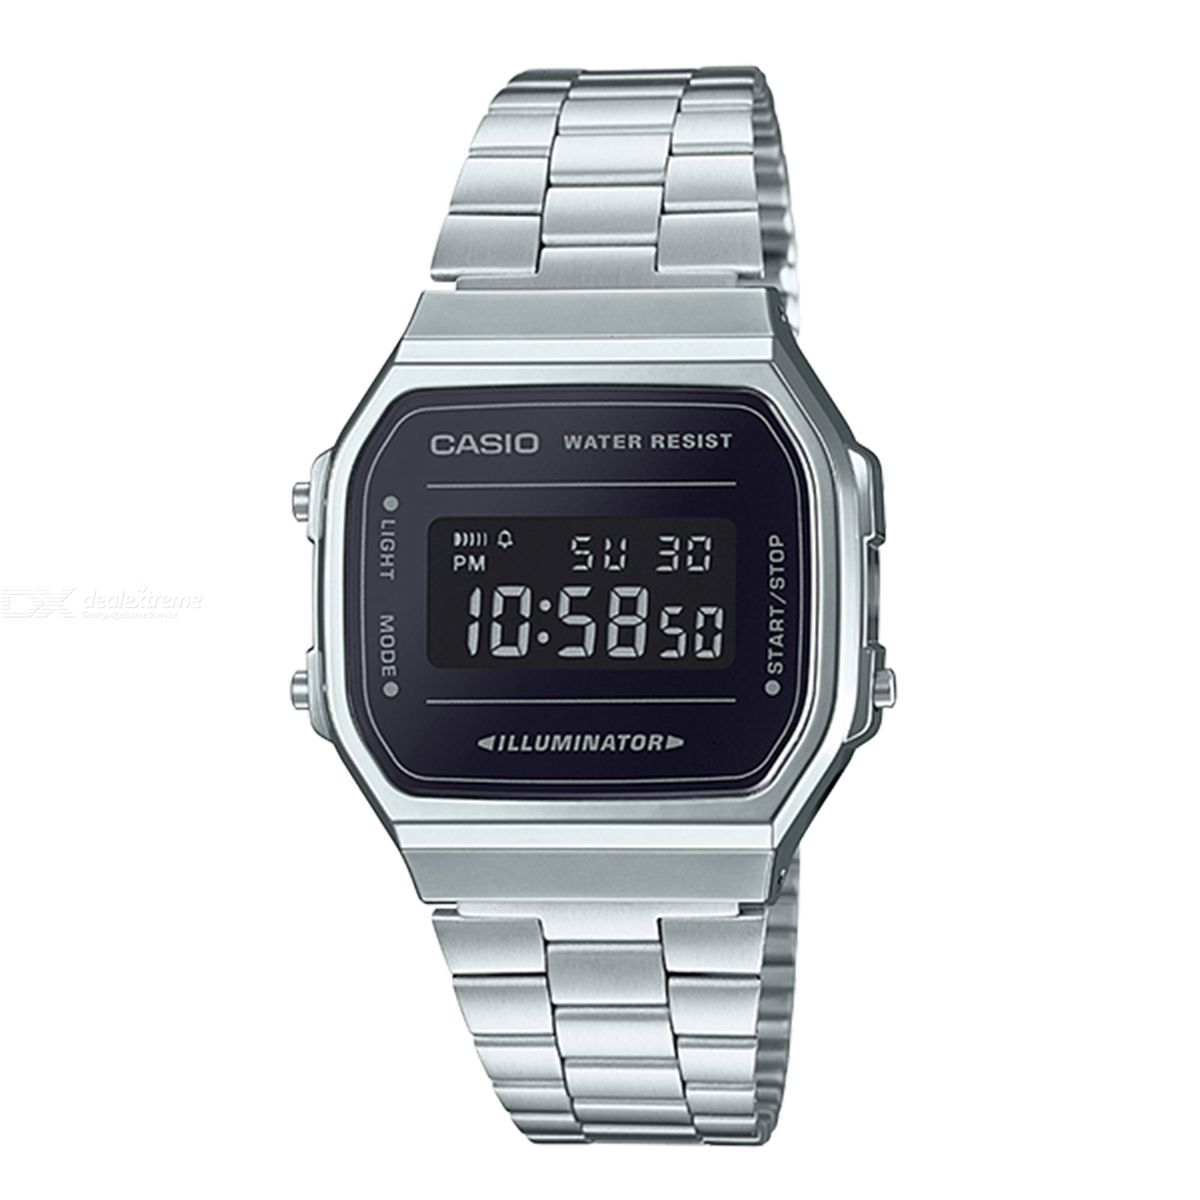 c27e439ff Casio A168WEM-1 Mirror Finish Frace Stainless Steel Digital Watches -  Silver and Black (